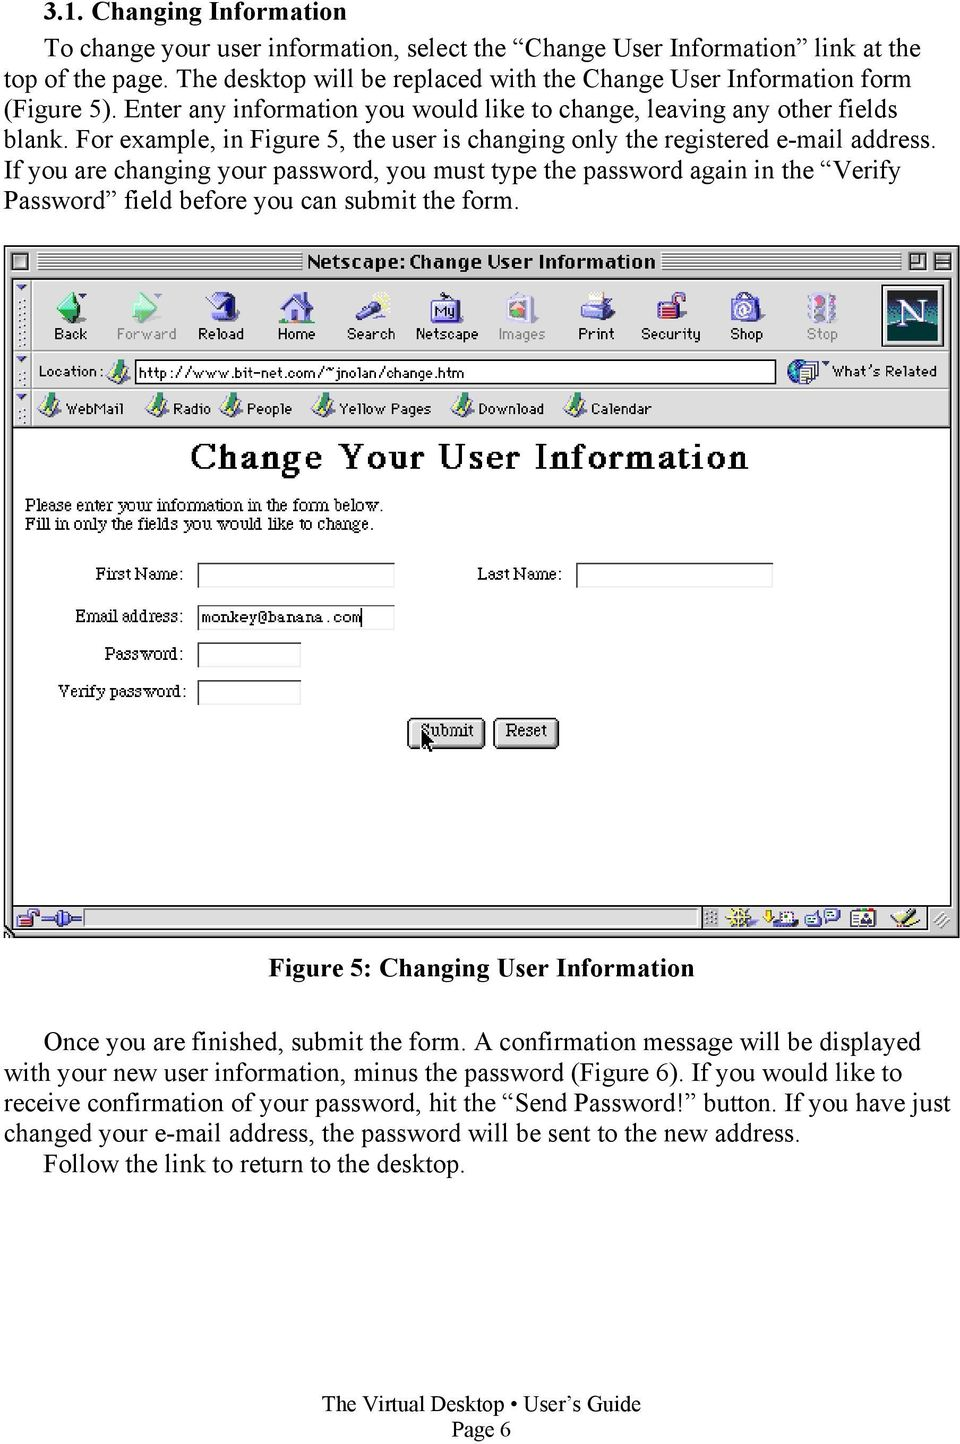 For example, in Figure 5, the user is changing only the registered e-mail address.